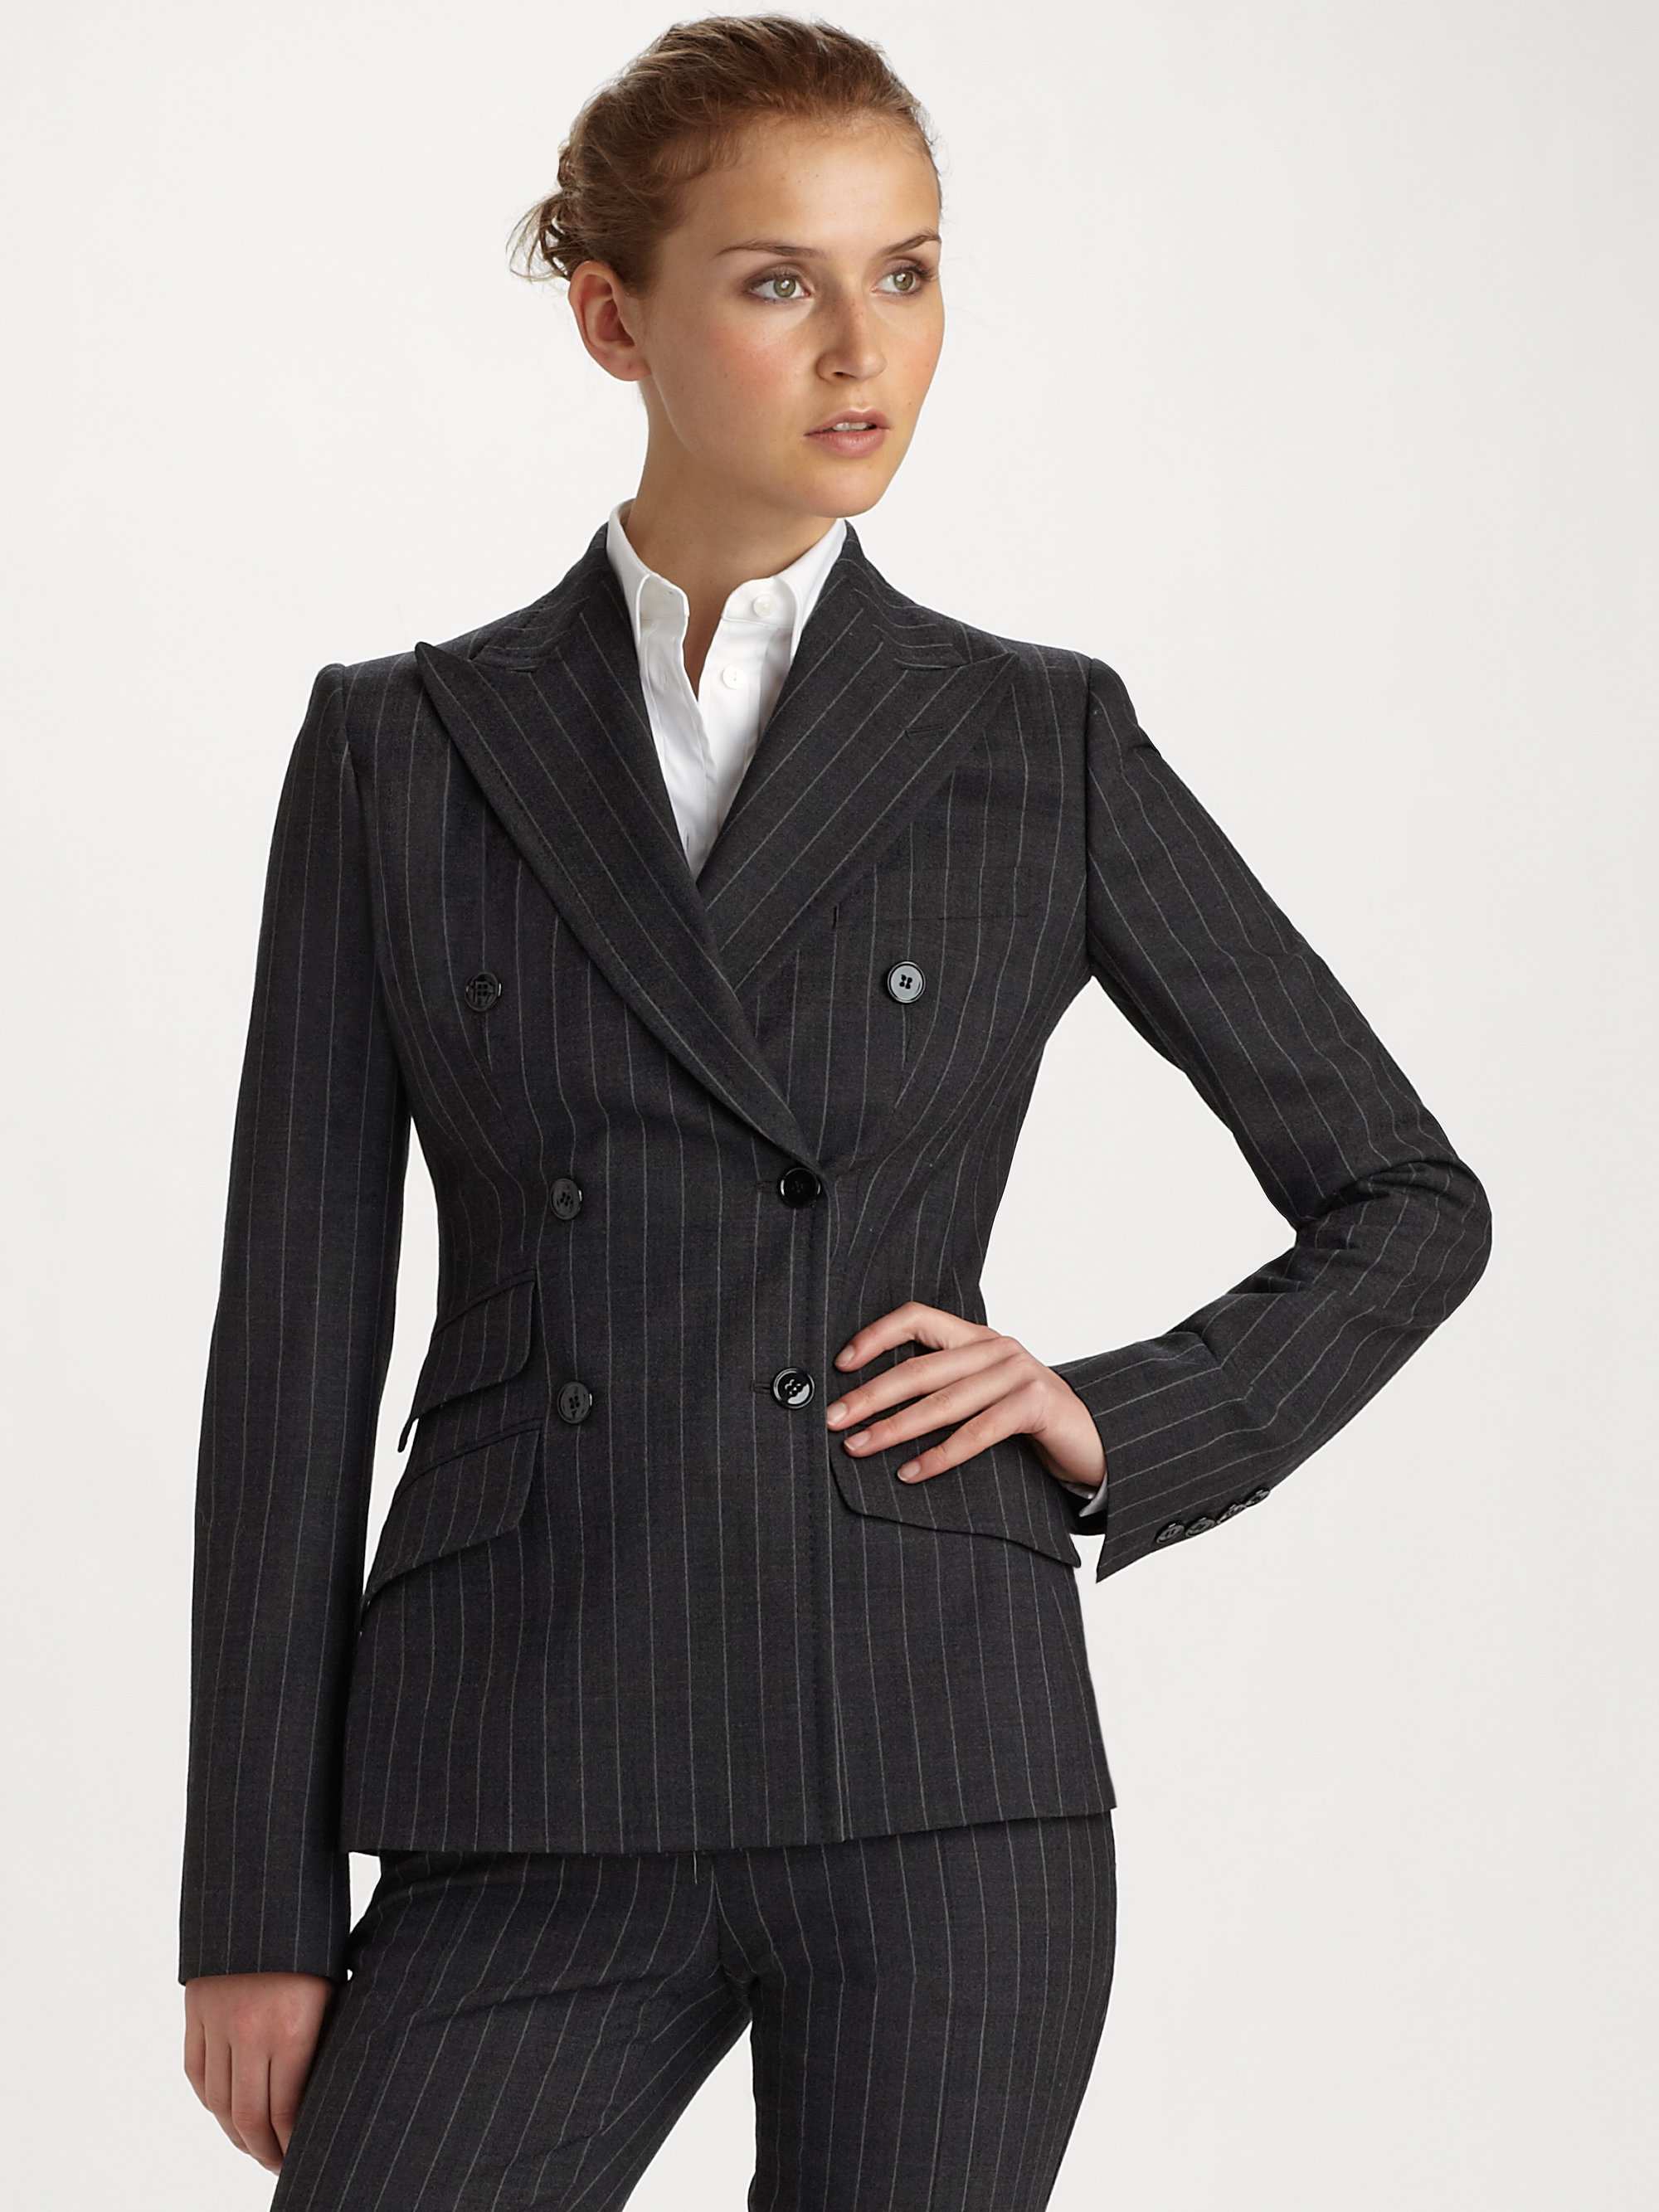 Sale Buy Limited Edition For Sale Dolce & Gabbana Double Breasted Turlington blazer Discount New Styles Cheap Sale Wiki nzaQbOZx6